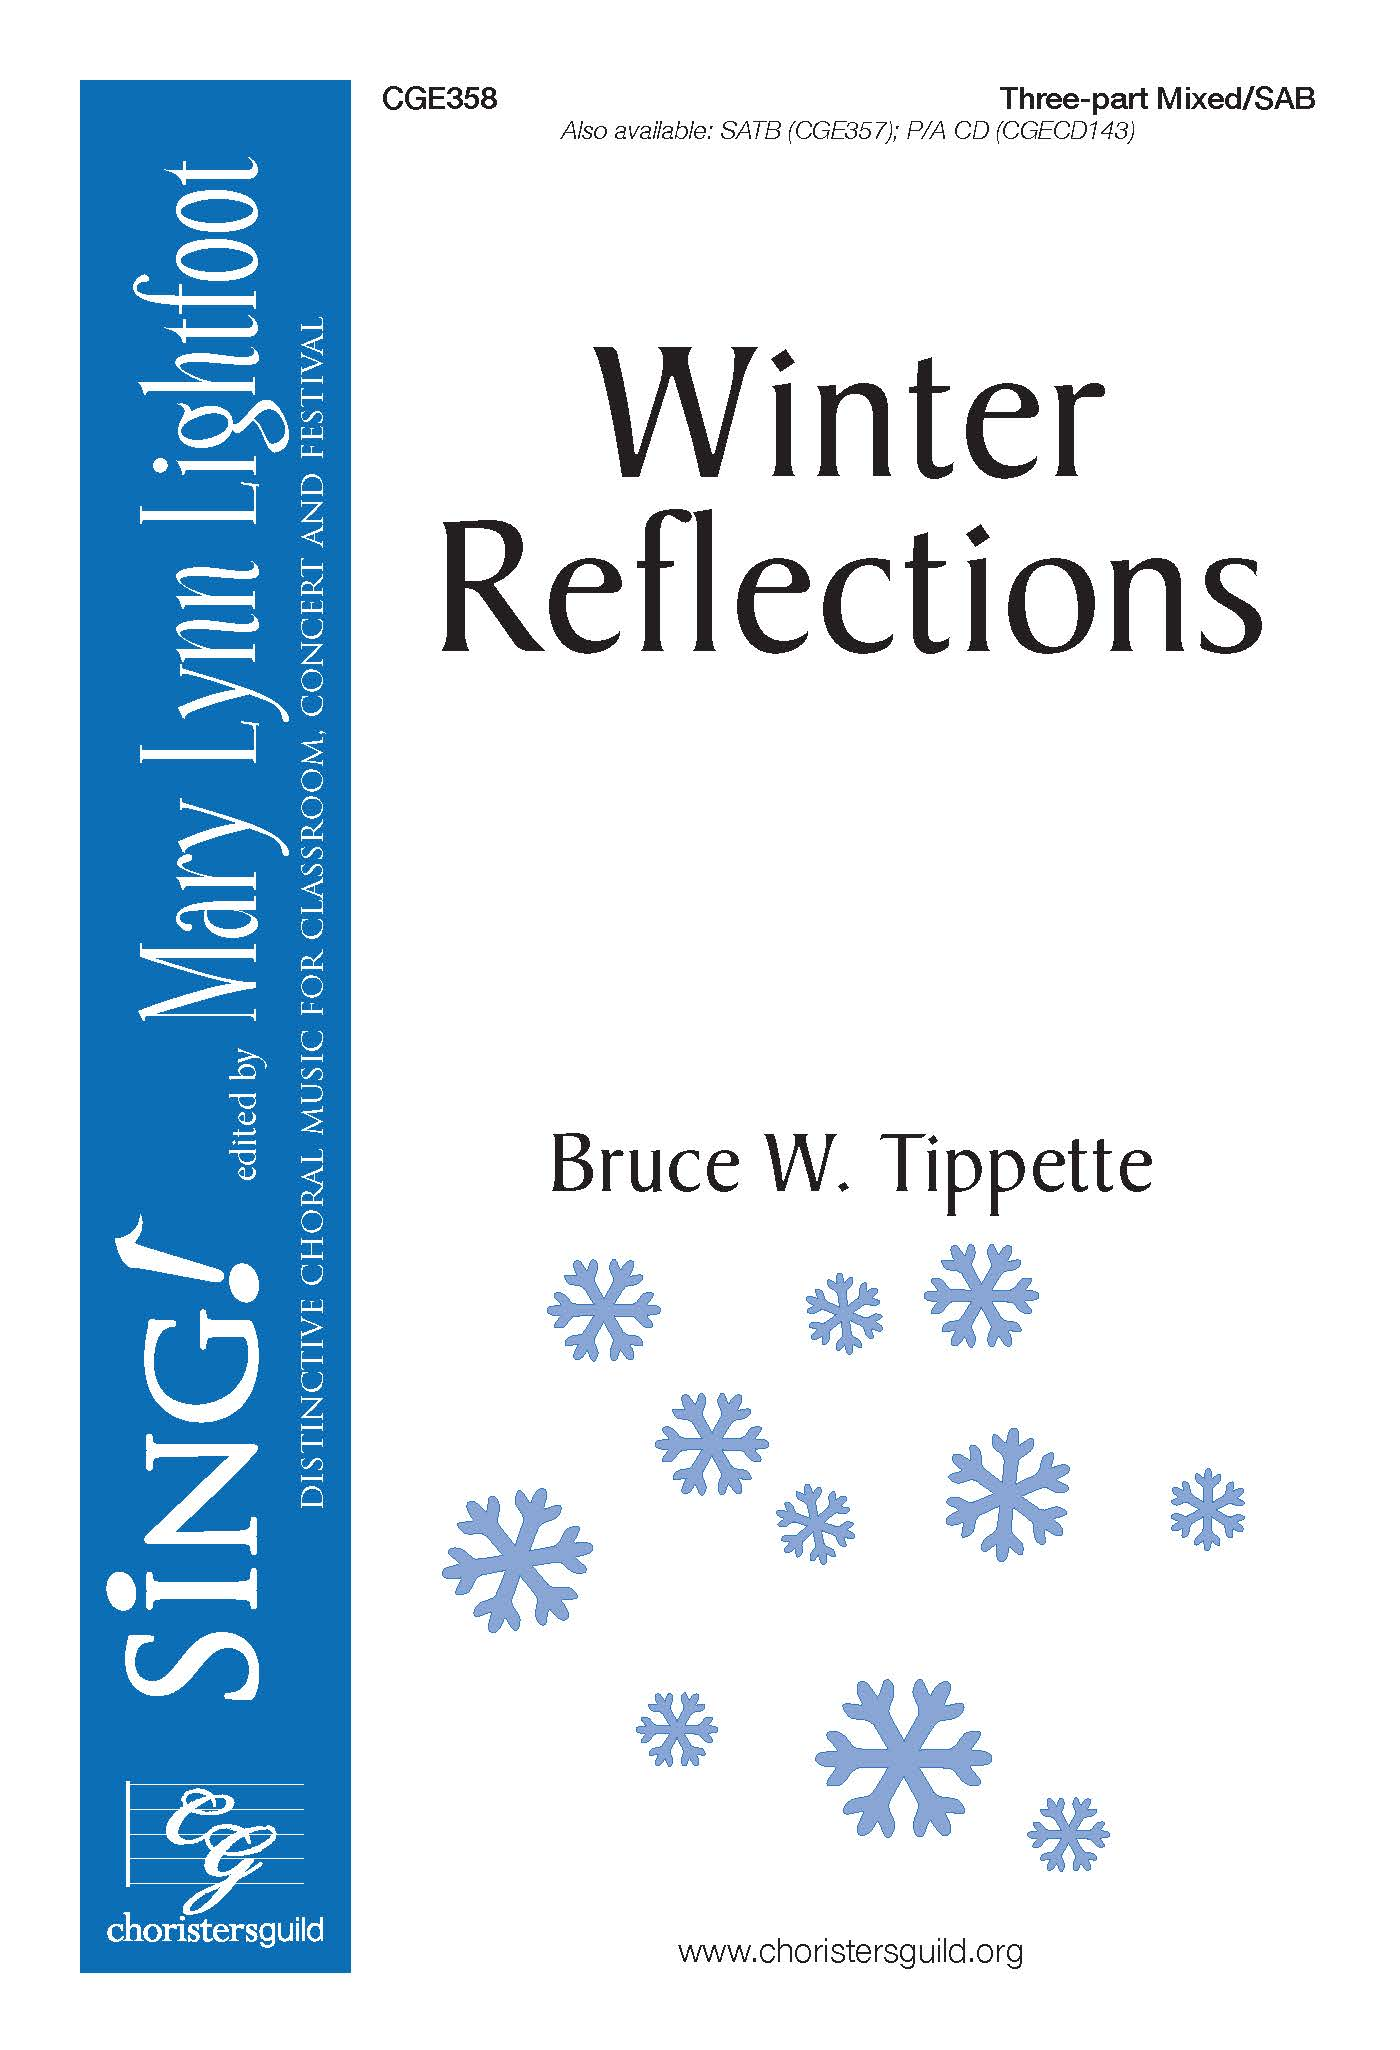 Winter Reflections - Three-part Mixed/SAB